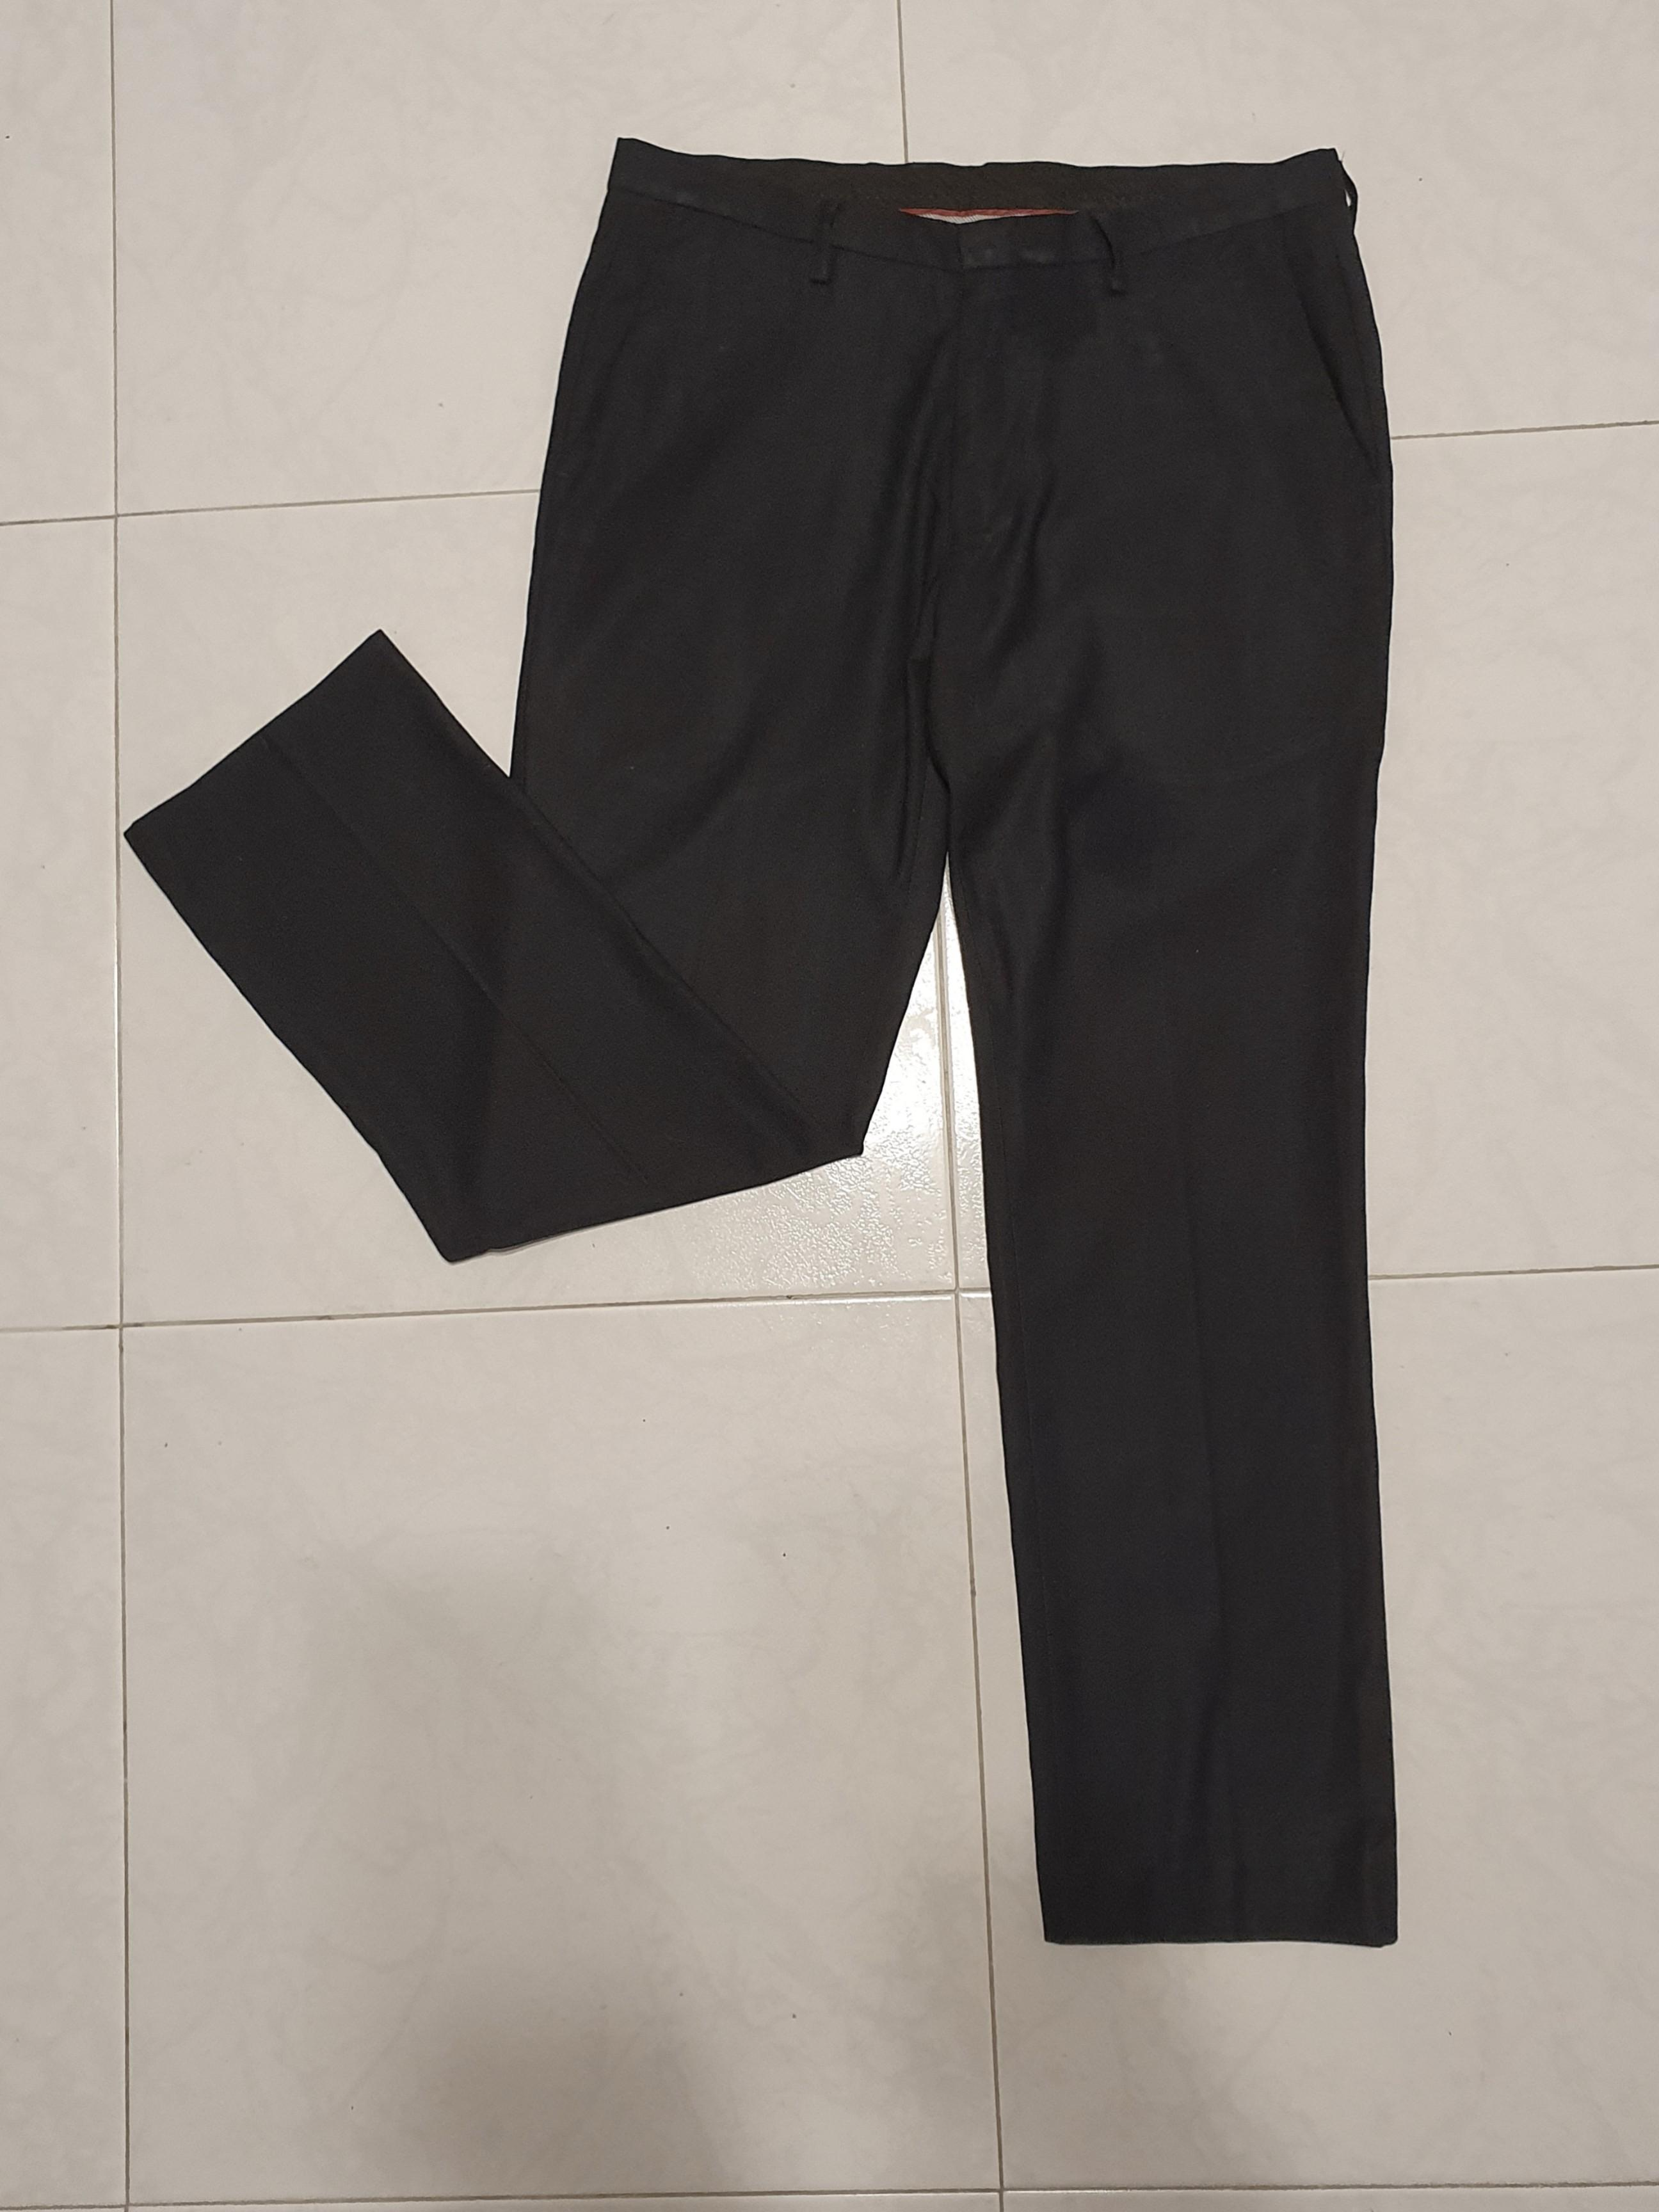 Type Dress Pants Fit Straight Pattern Striped Color Black Material Spandex Closure Drawstring Waist Mid